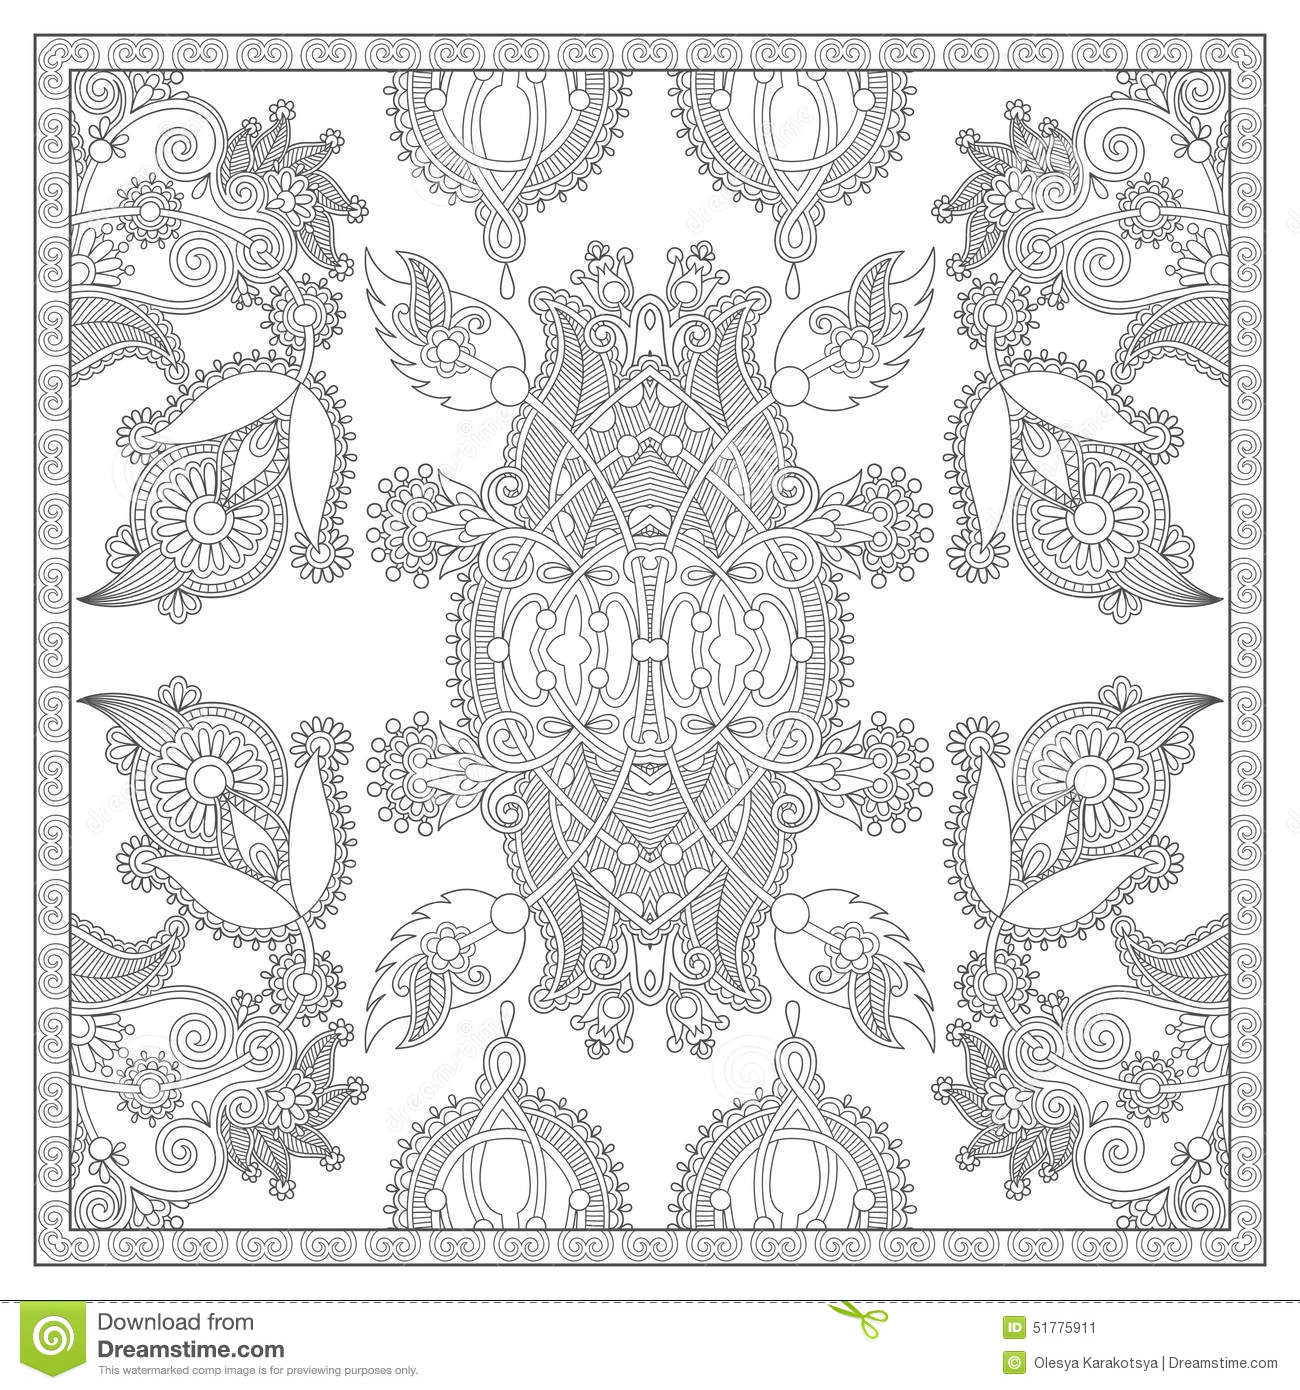 Unique Coloring Book Square Page For Adults Stock Vector ...